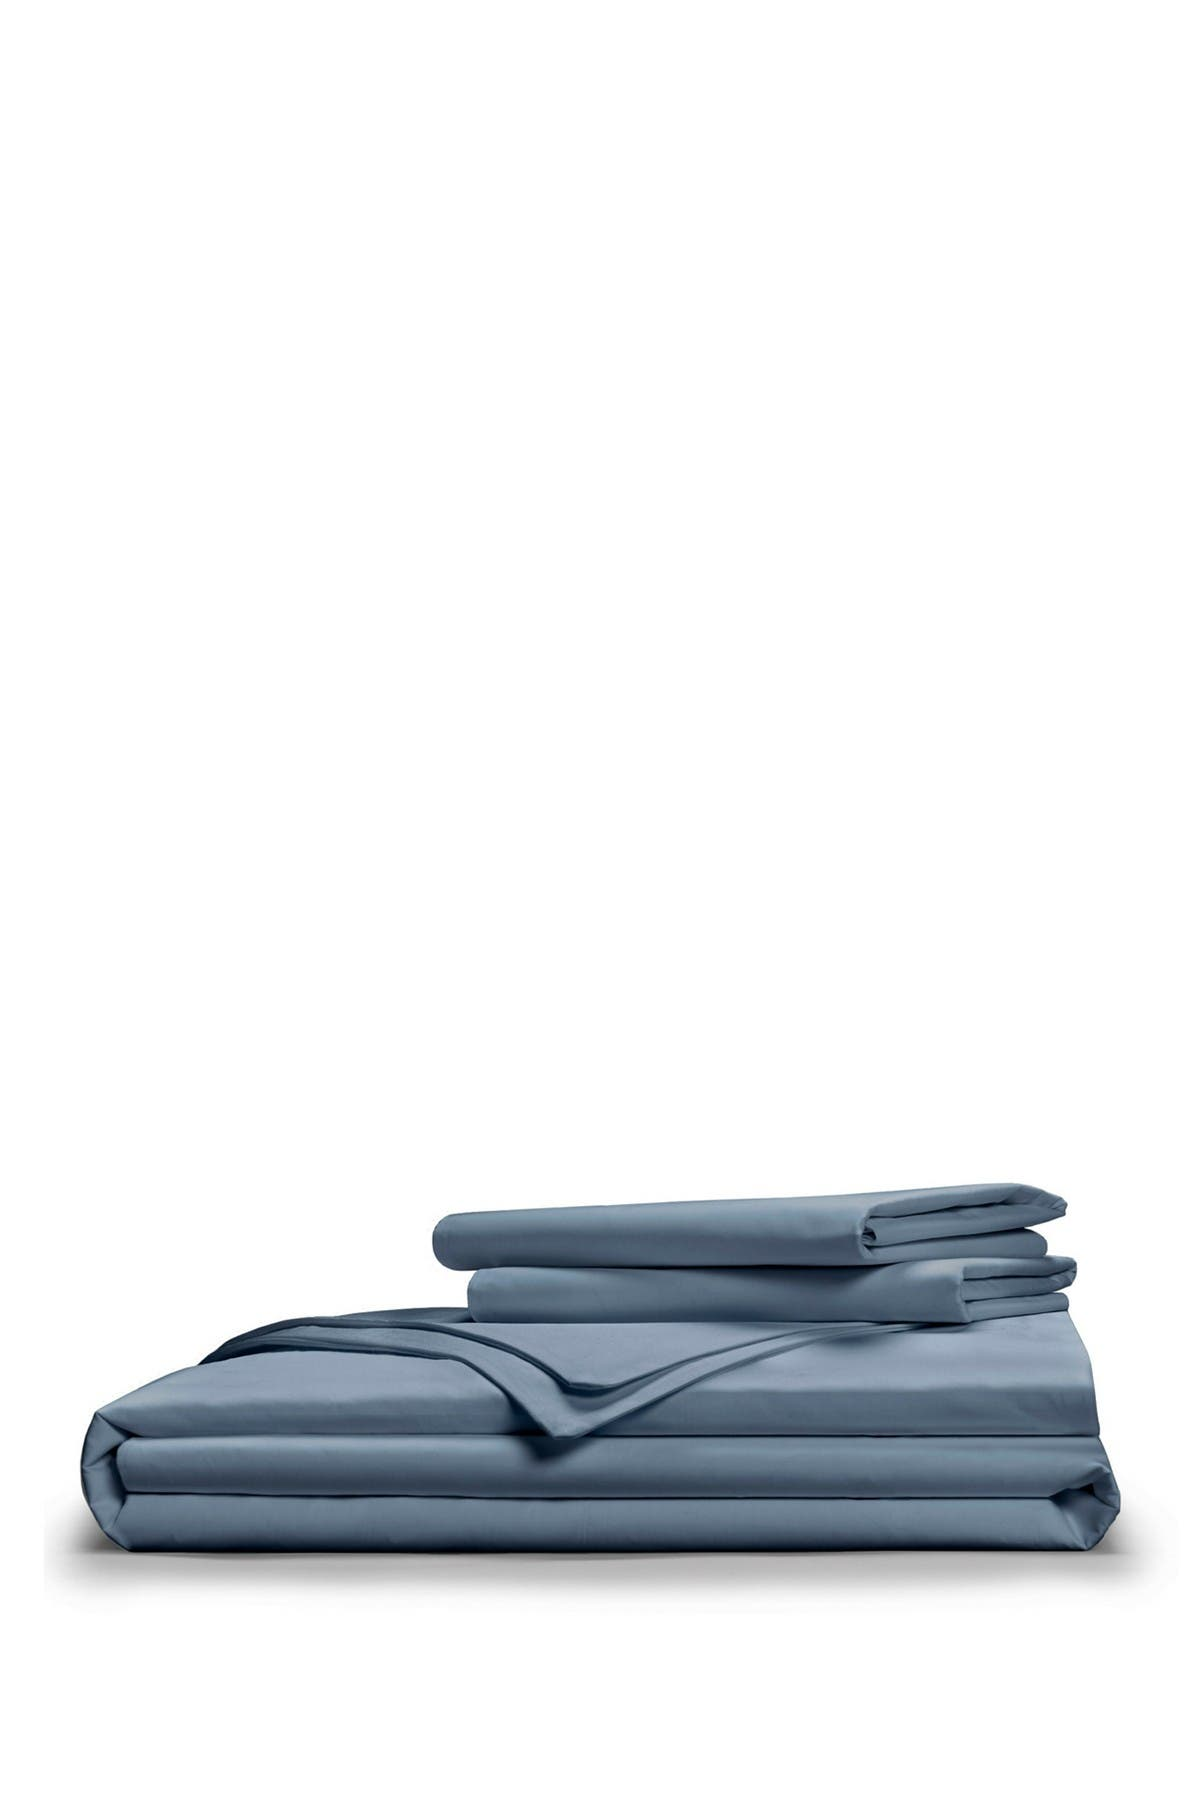 Image of Pillow Guy Full/Queen Luxe Soft & Smooth Tencel Duvet Cover Set - Cadet Blue